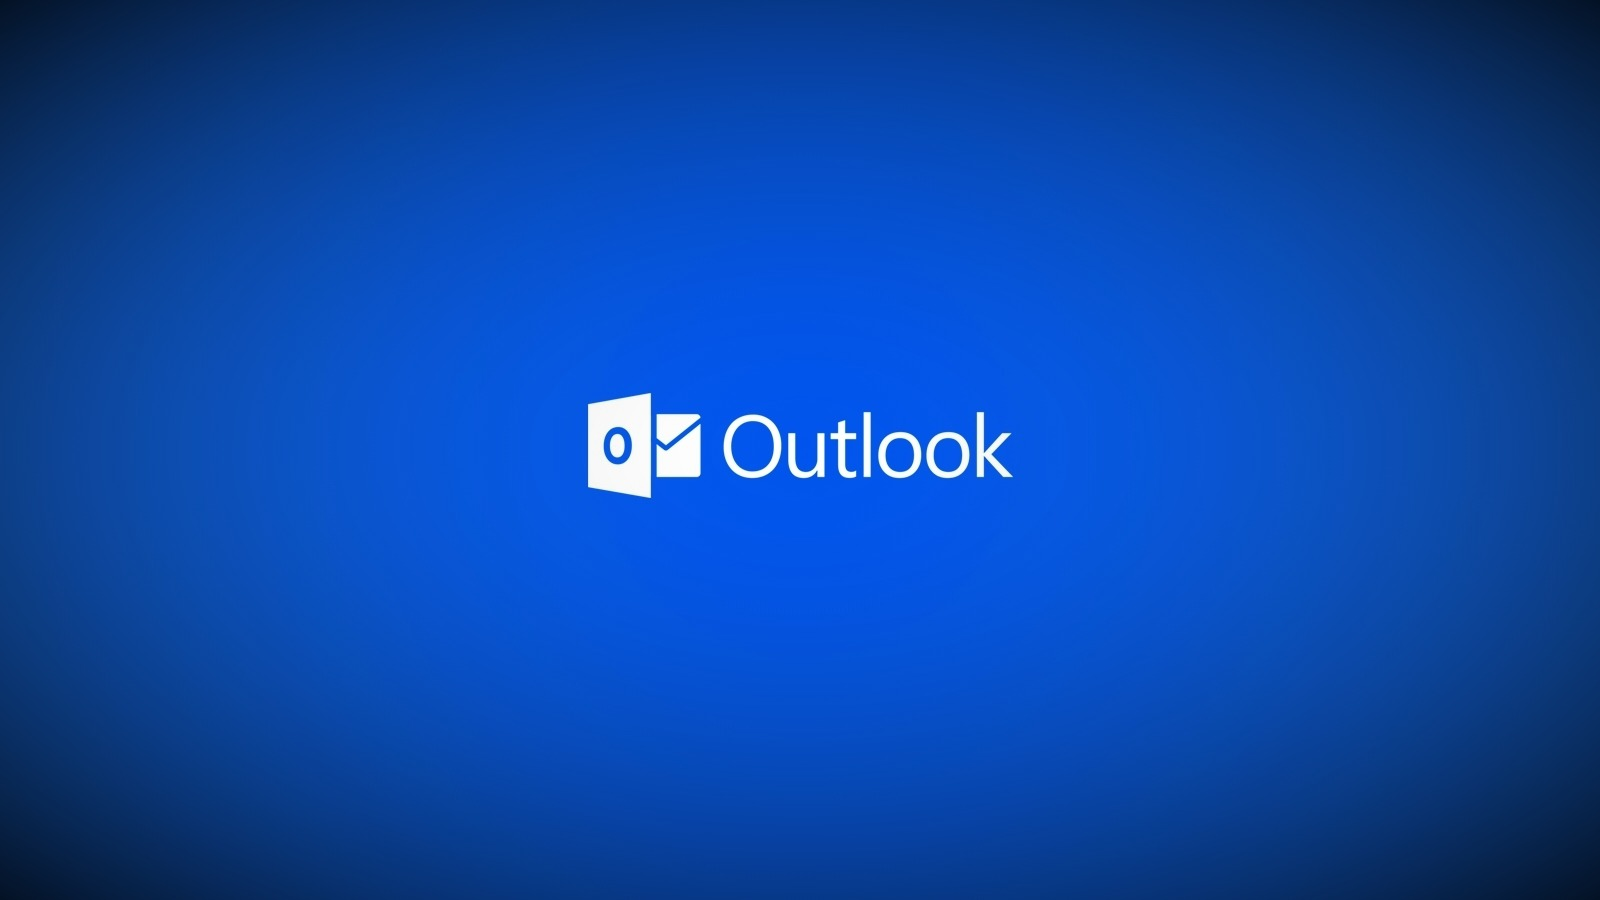 Microsoft Outlook bug prevents viewing or creating email worldwide - BleepingComputer